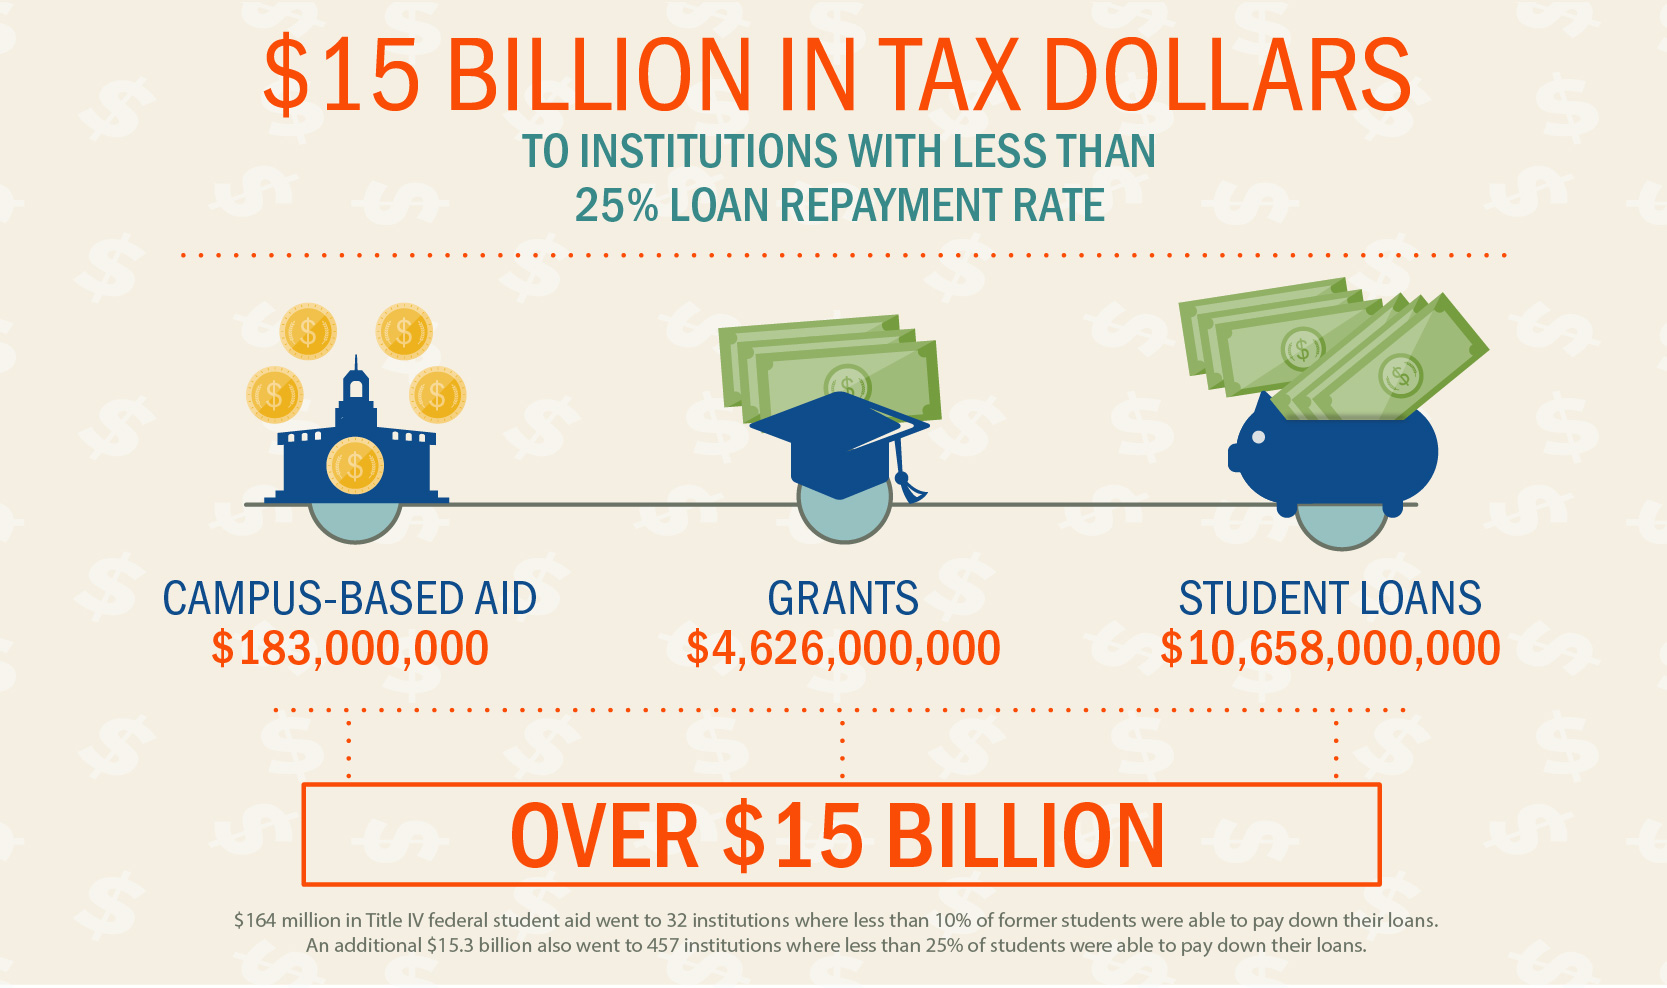 $15 billion in tax dollars went to institutions with less than 25% loan repayment rates